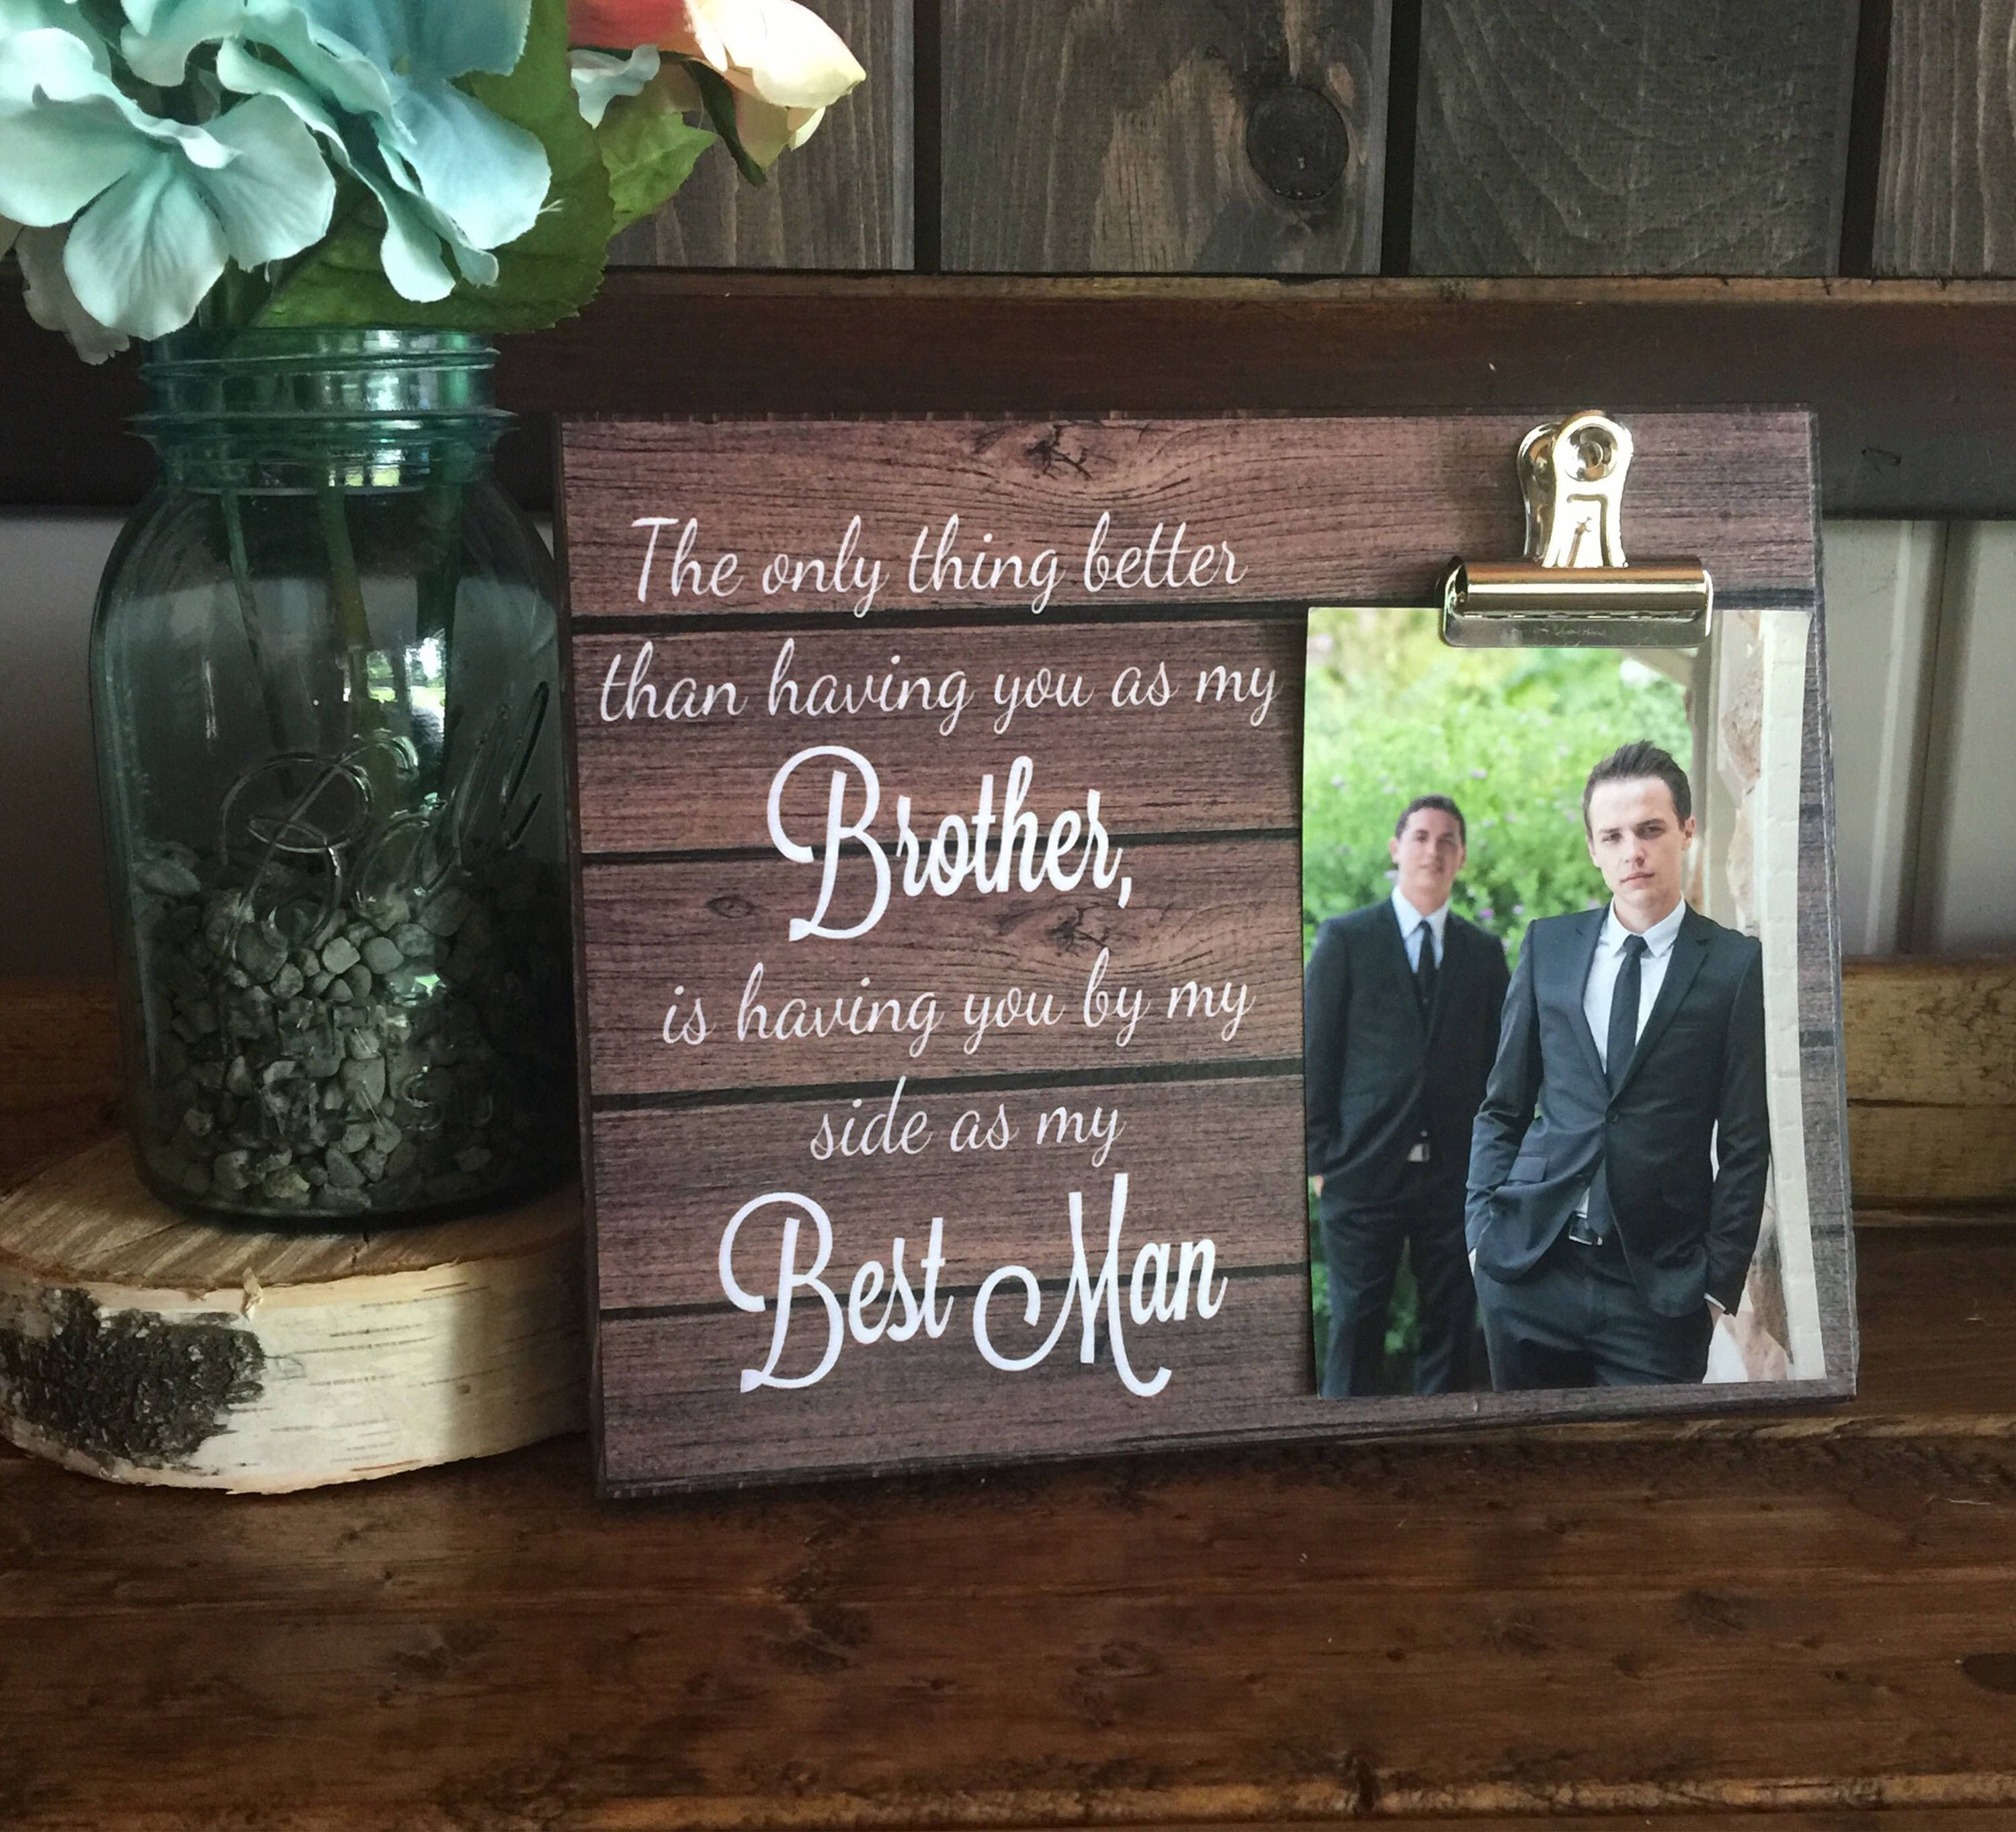 Wedding Gift For Acquaintance: Best Man Gift, Groomsman Proposal, The Only Thing Better